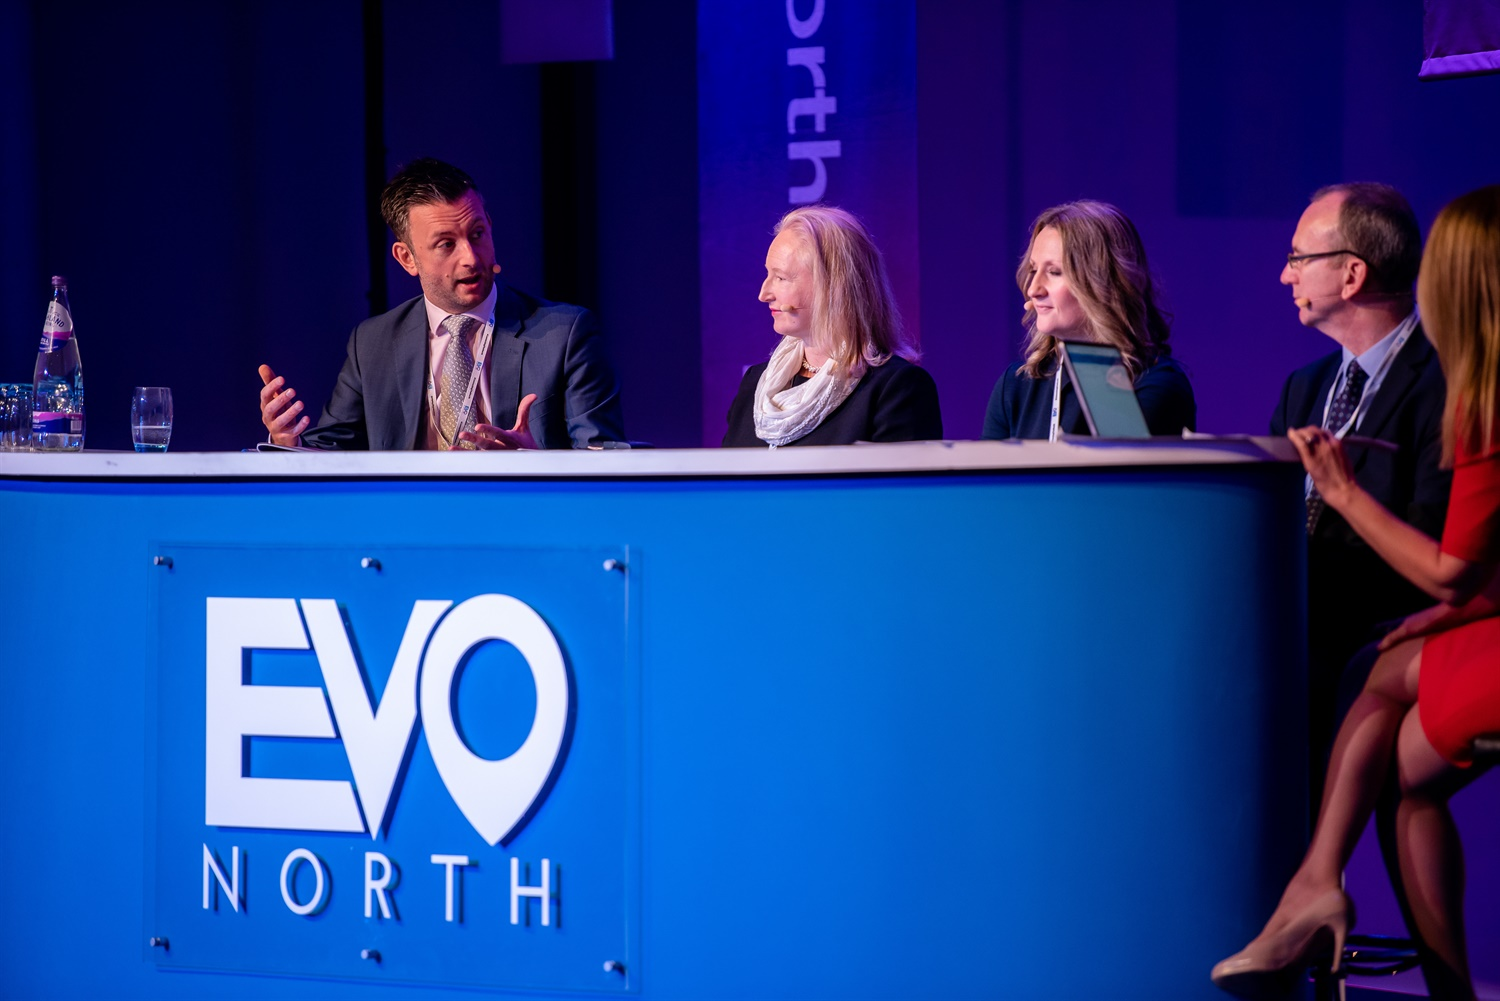 Transport and Connectivity at EvoNorth 2019